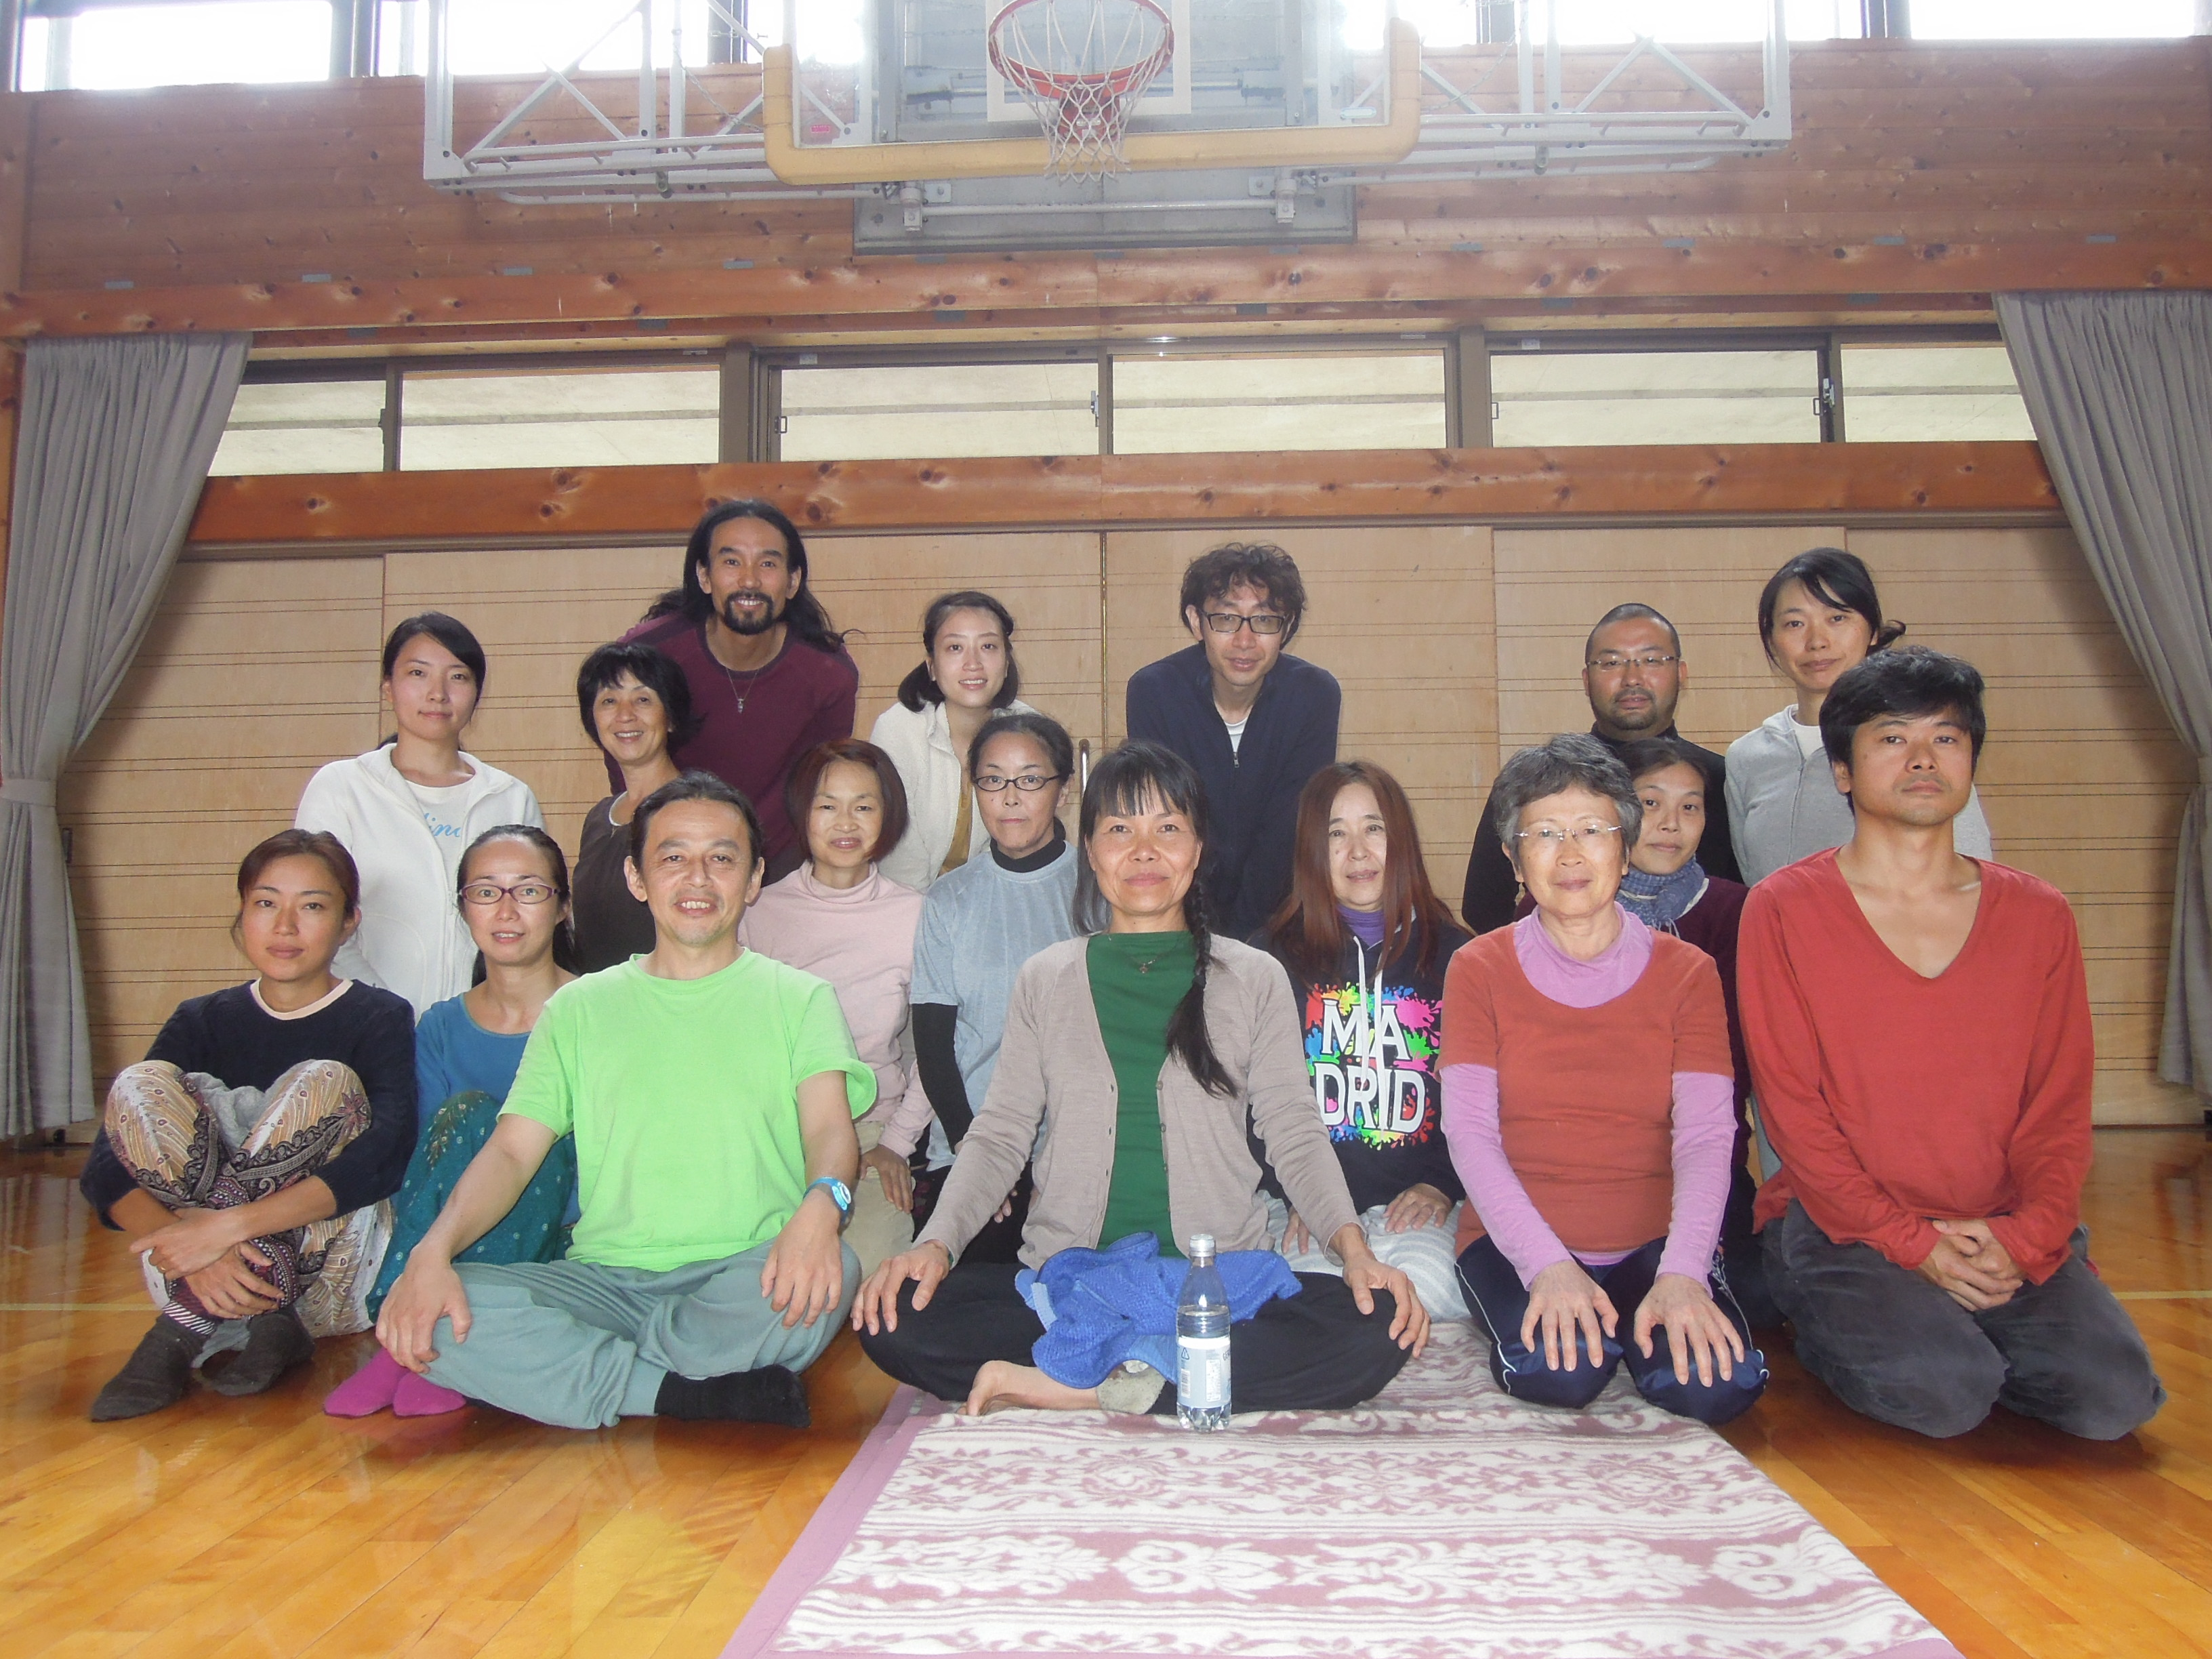 Yantra Yoga Course in Kyoto, Japan from October 4-5, 2014 with Oni McKinstry